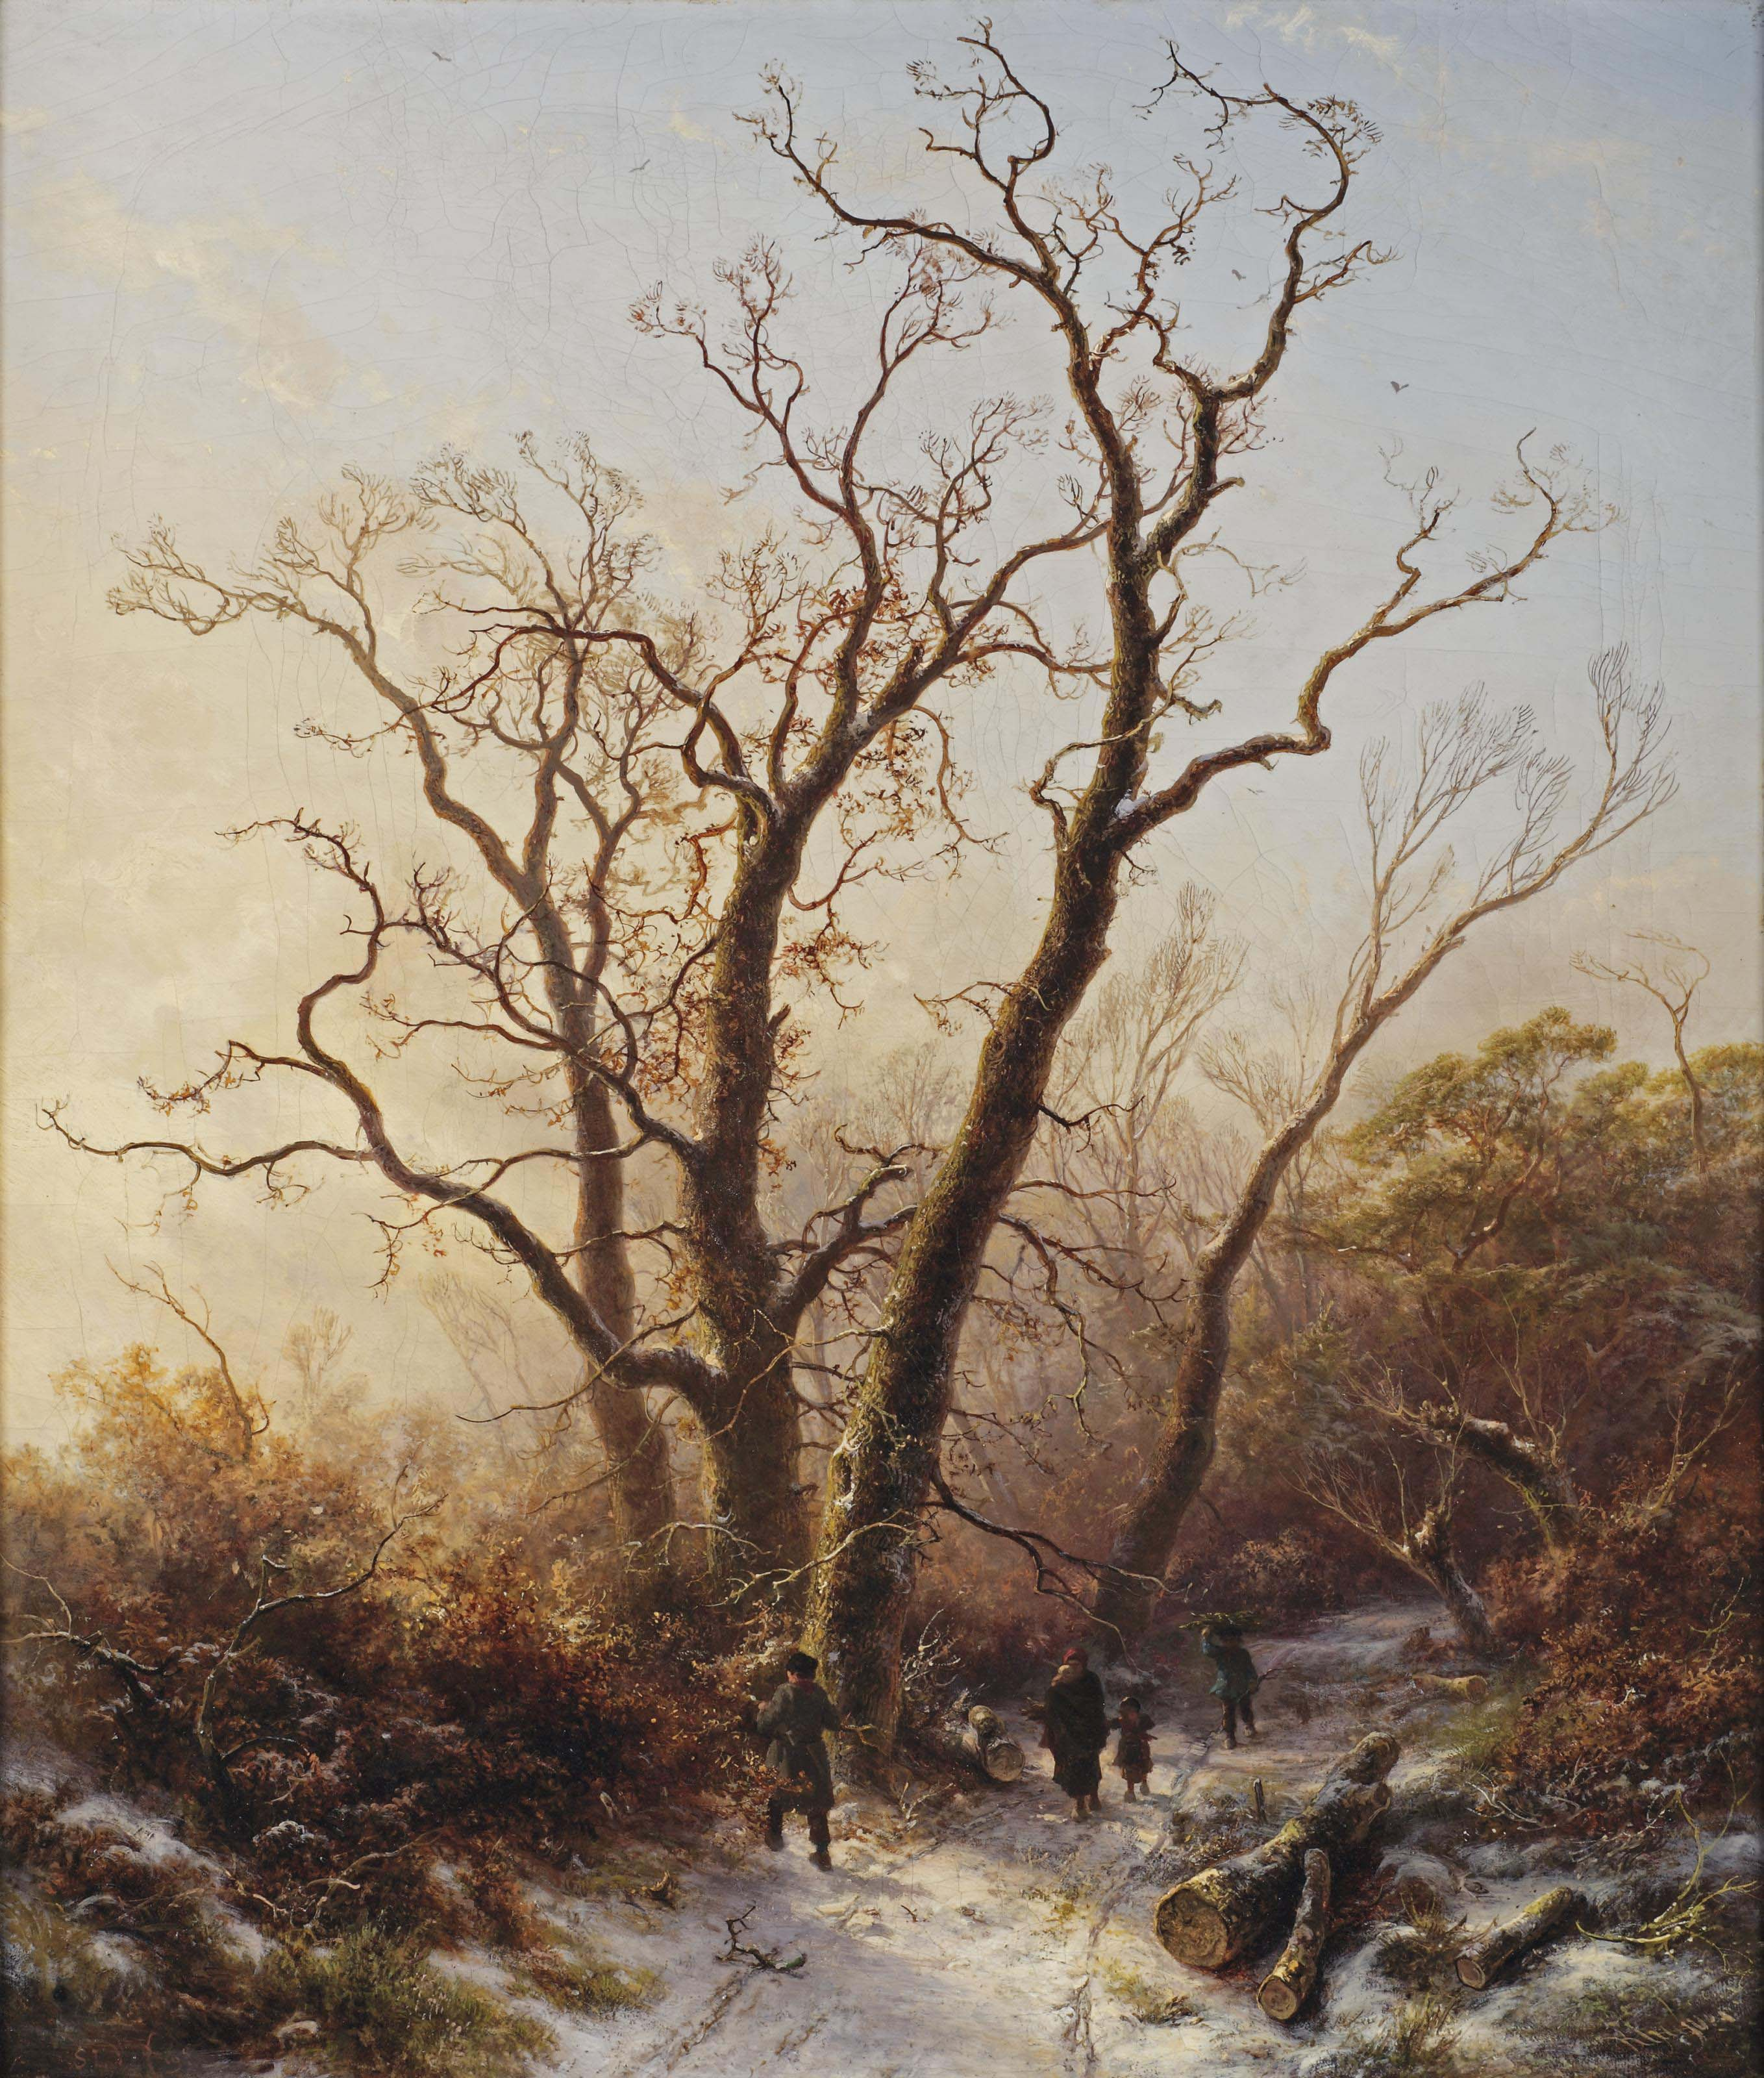 Gathering wood on a cold wintersday